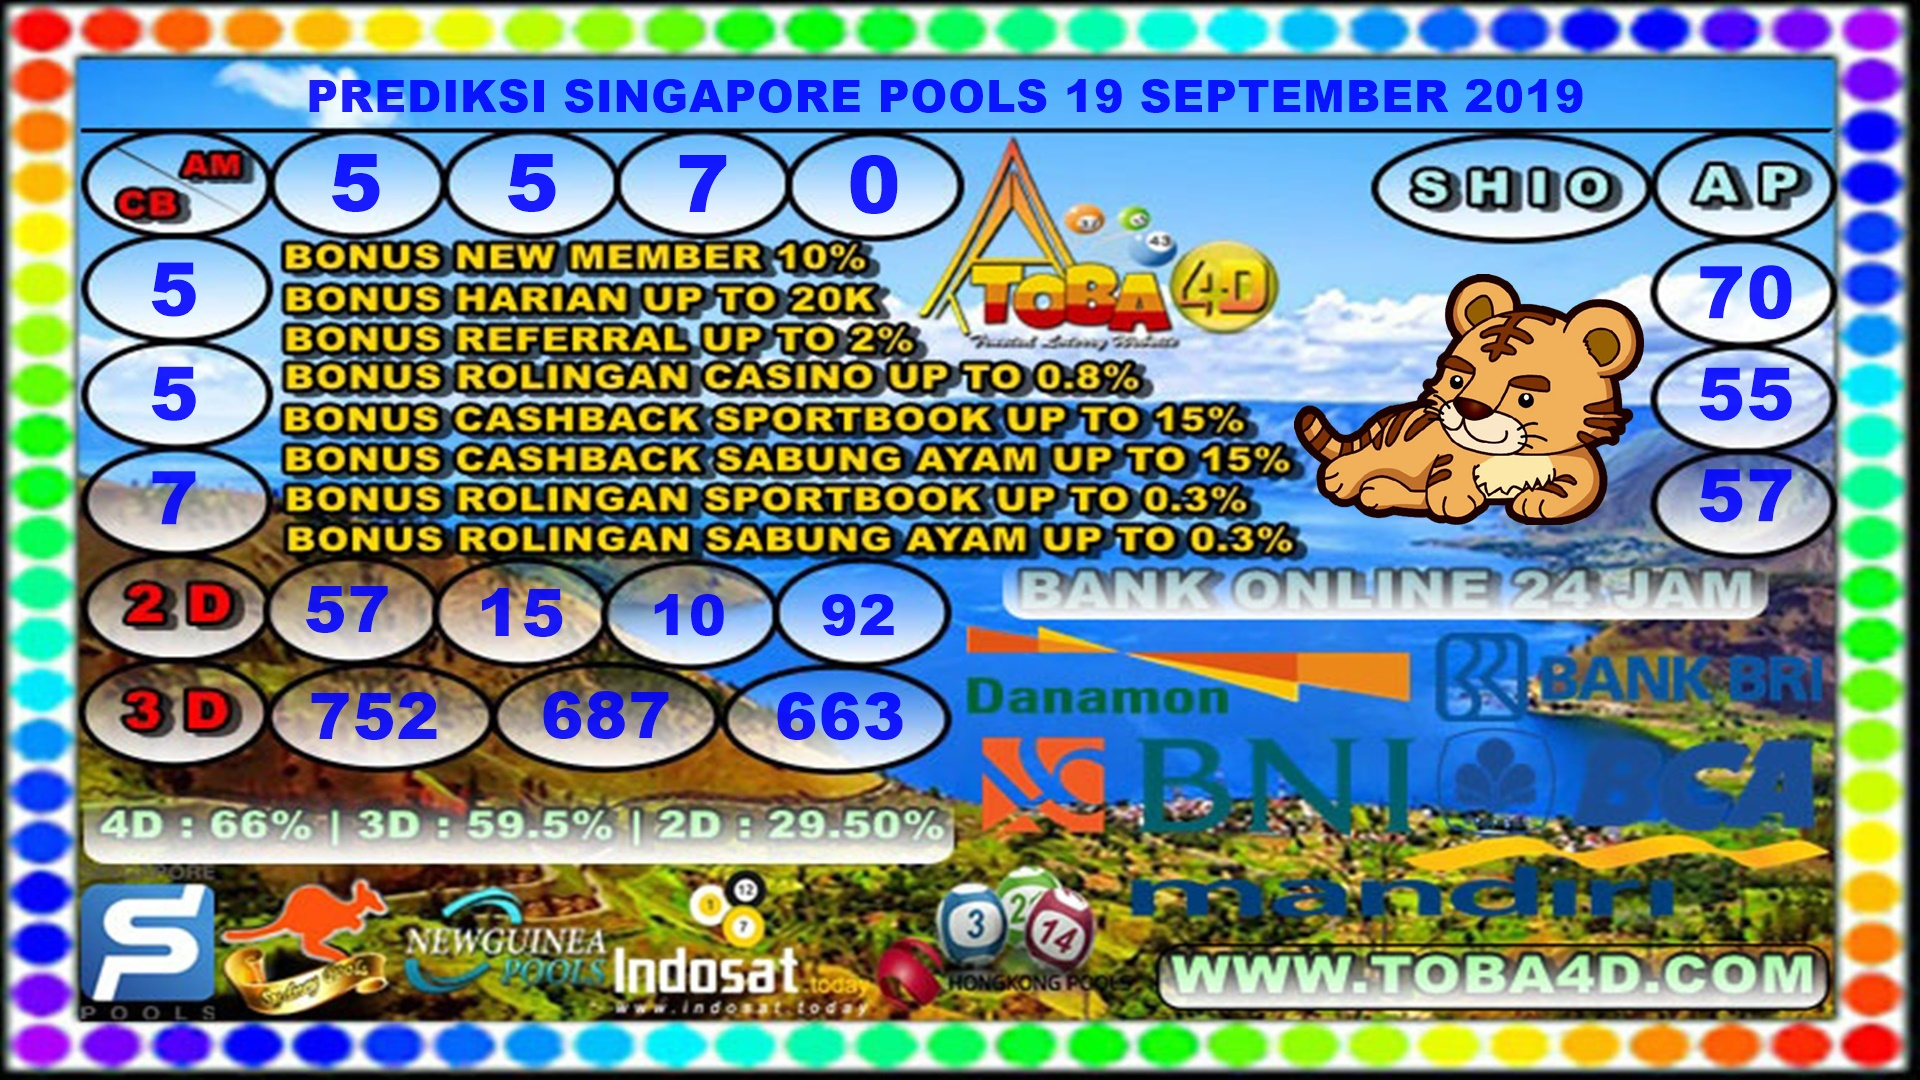 PREDIKSI SINGAPORE POOLS 19 SEPTEMBER 2019